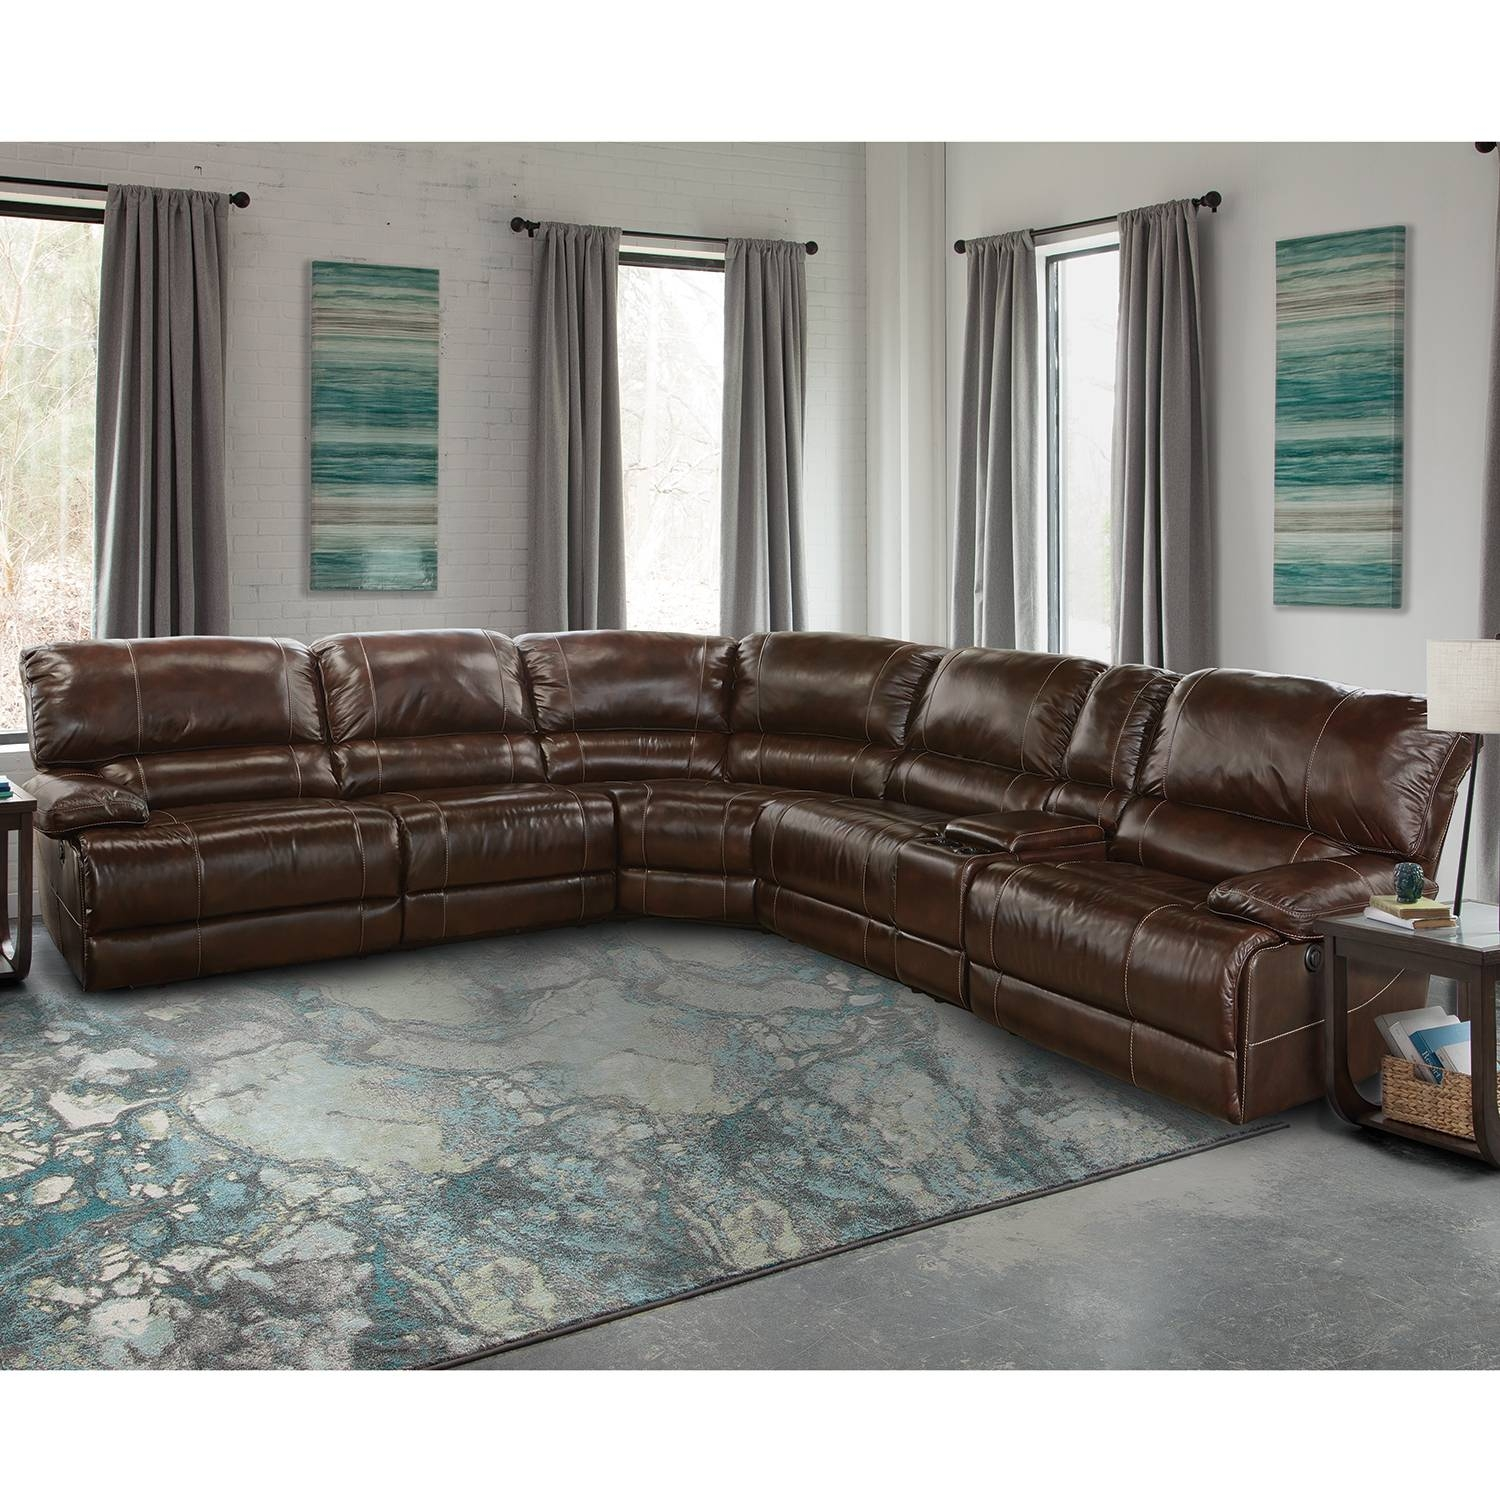 Stunning 6 Piece Leather Sectional Sofa 68 For Your Sectional intended for Leather Sectional Sofas Toronto (Image 17 of 25)